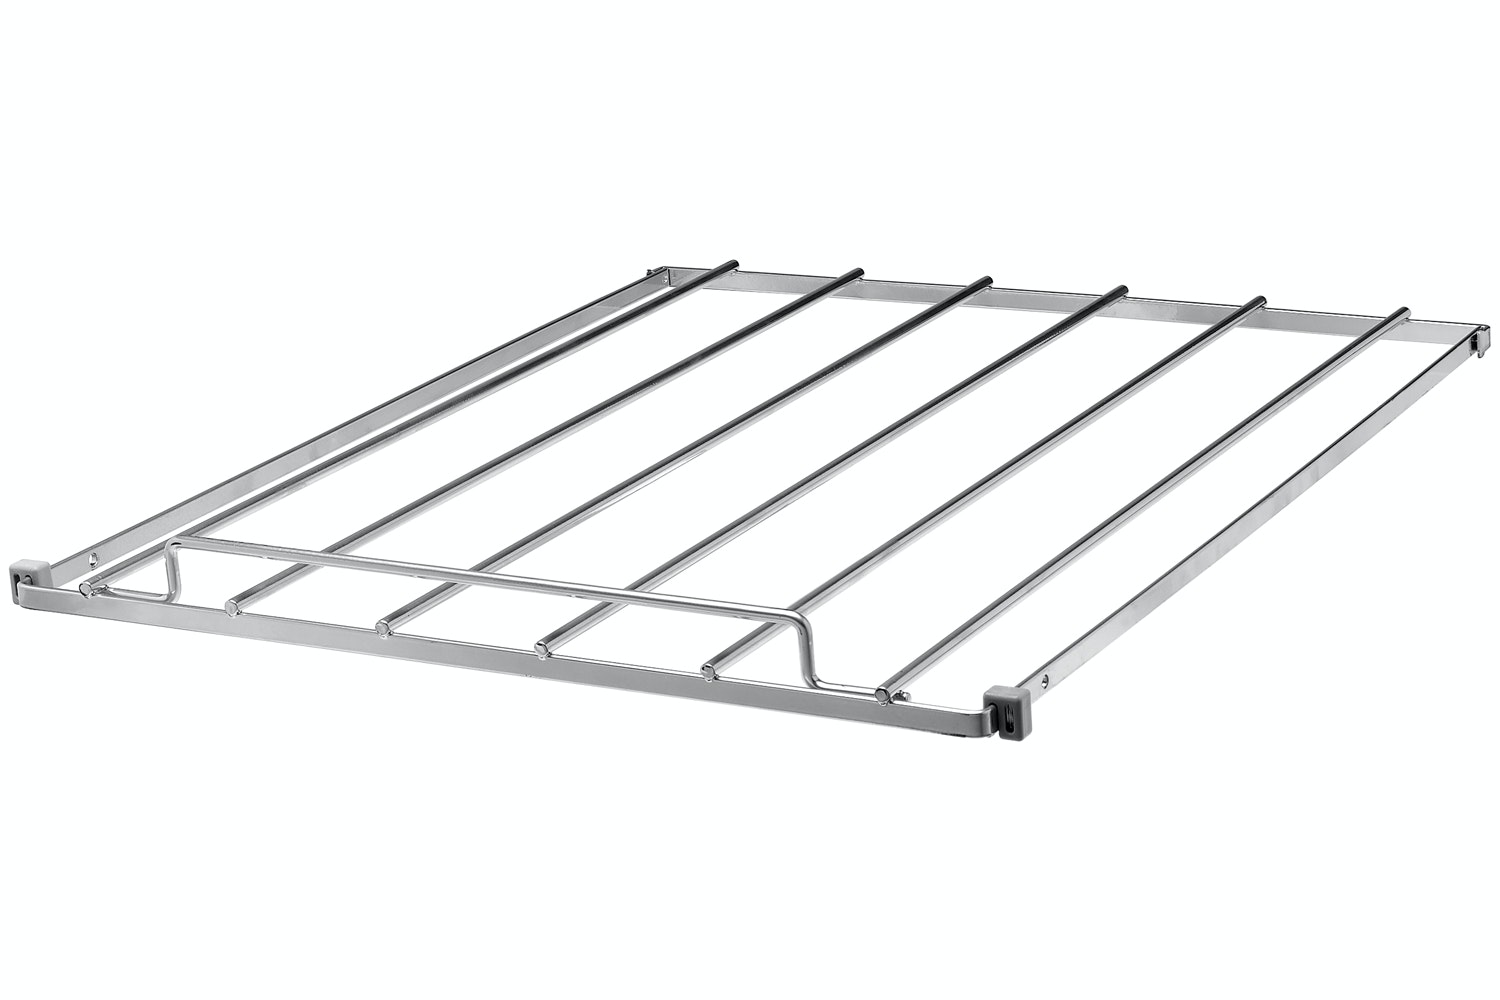 Jutzler 1 Sliding Trousers Shelf